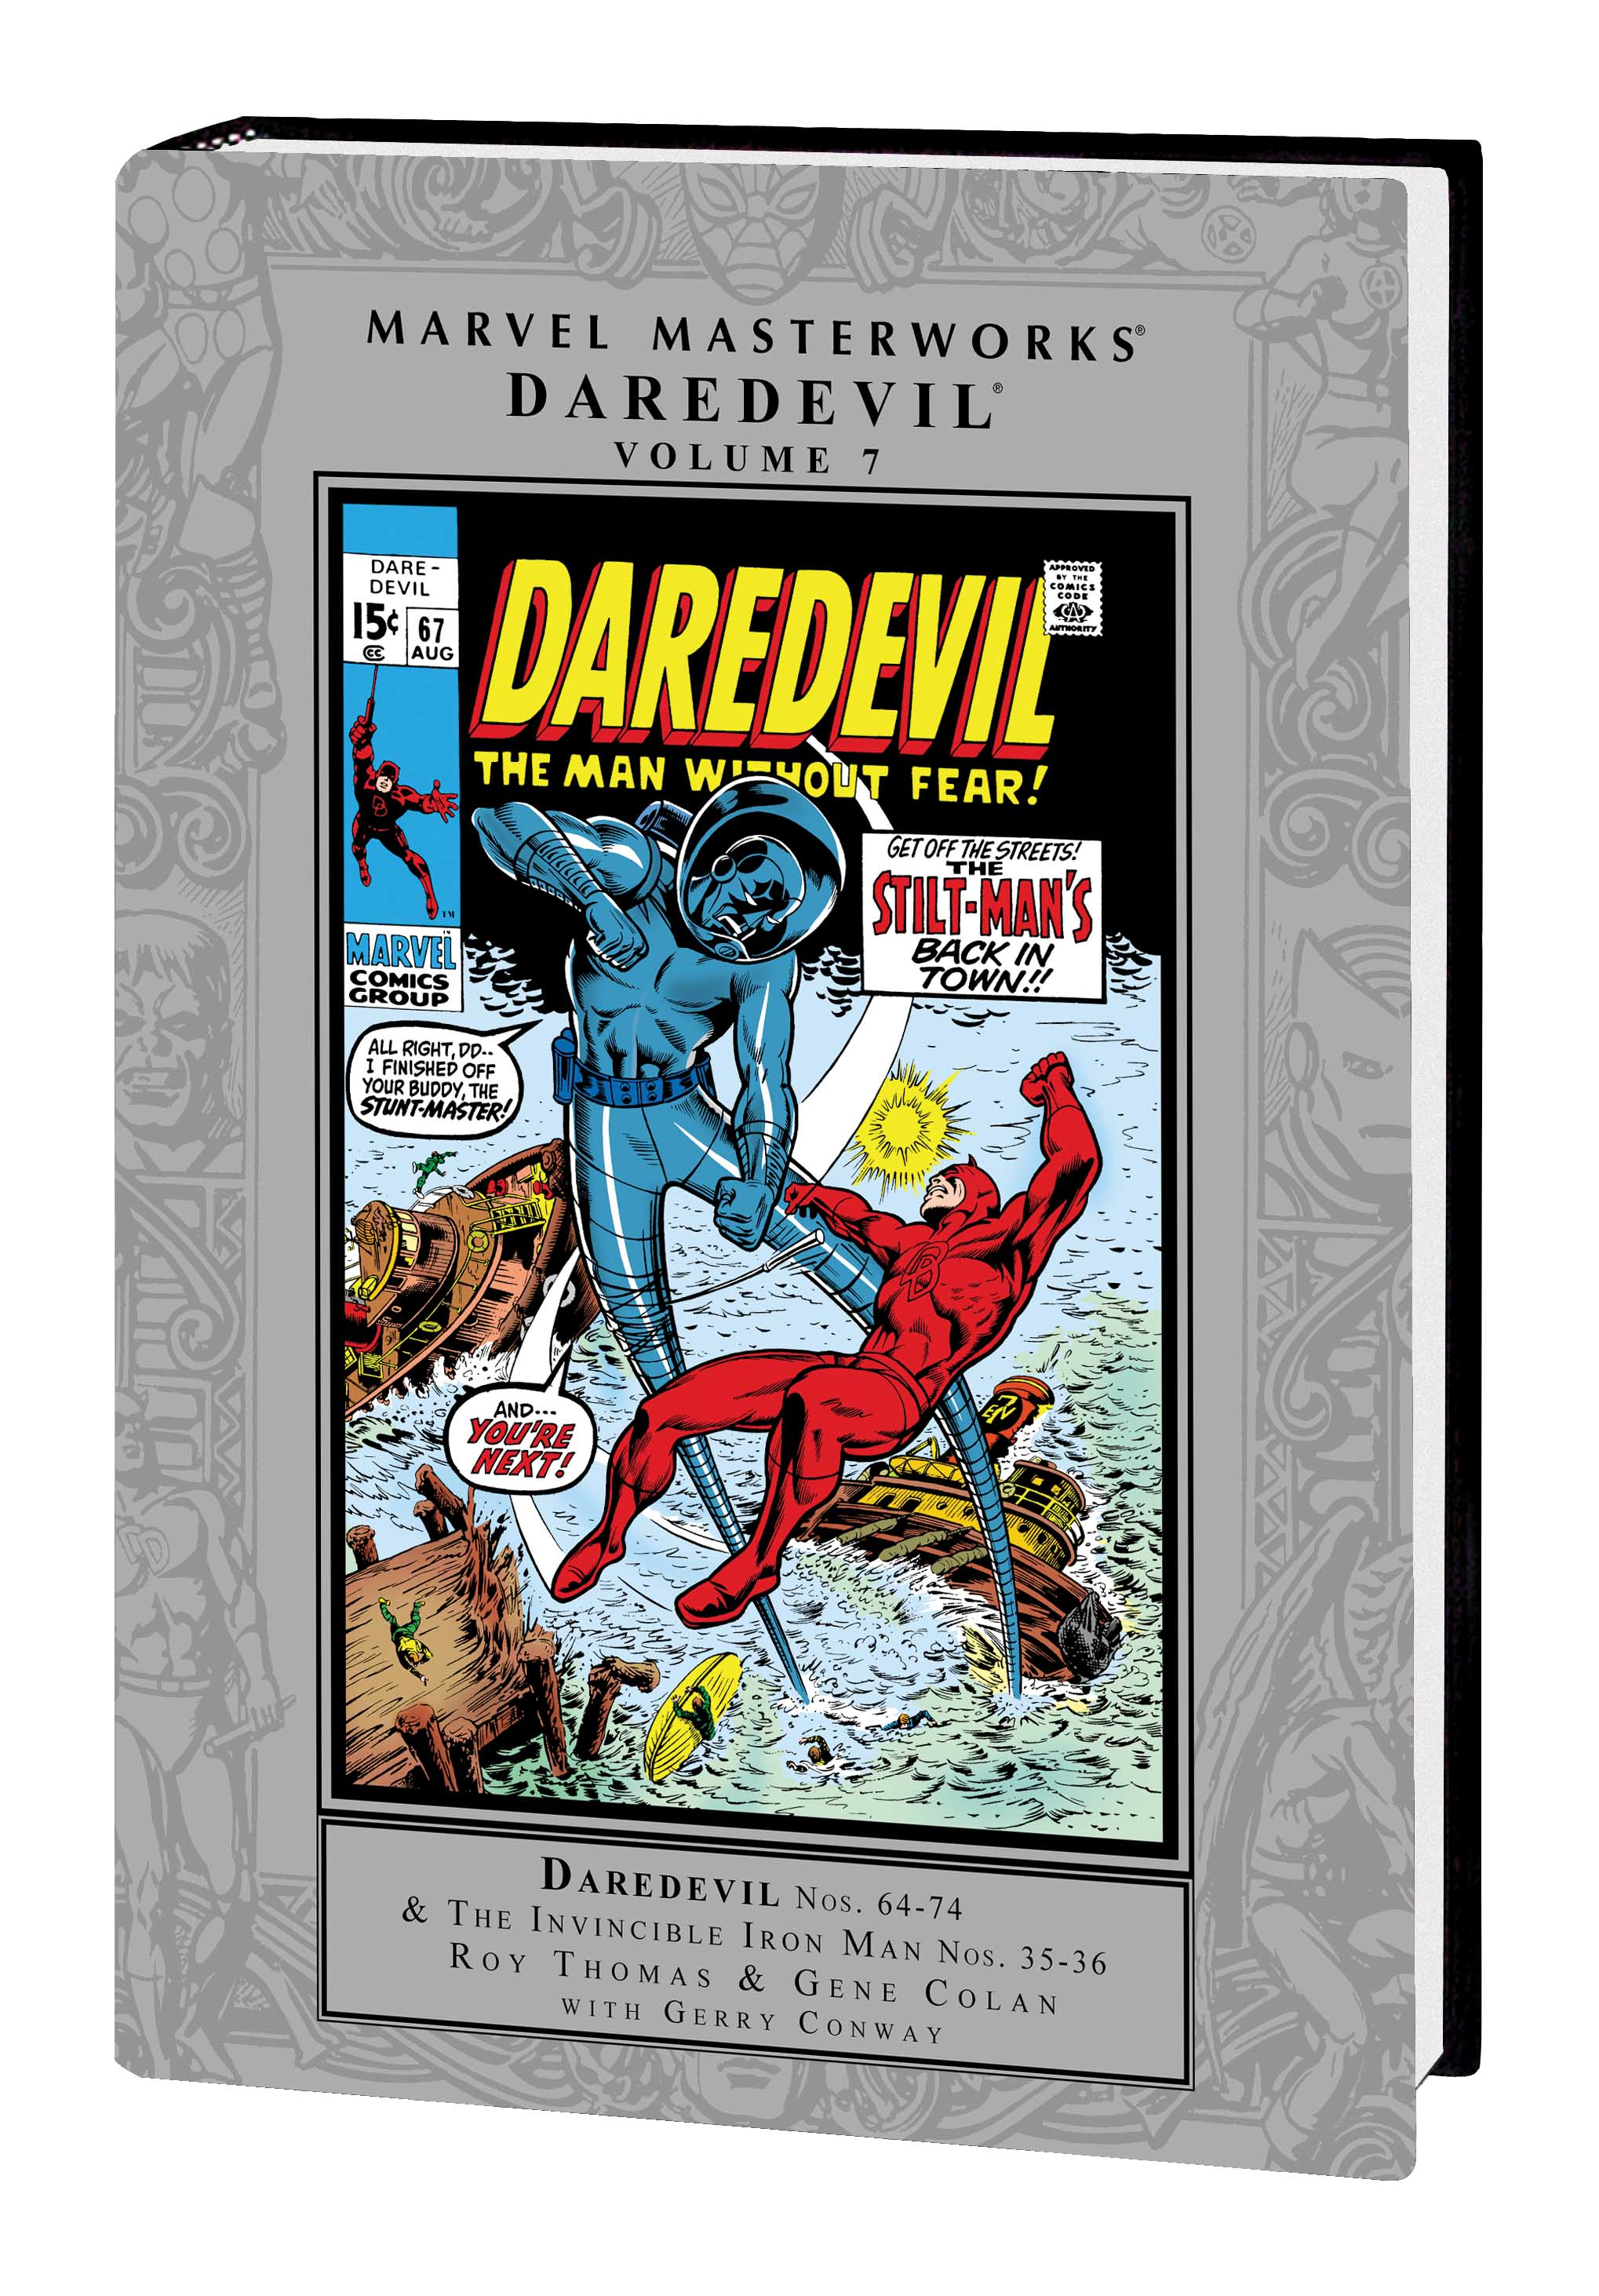 MARVEL MASTERWORKS: DAREDEVIL VOL. 7 HC (Hardcover)